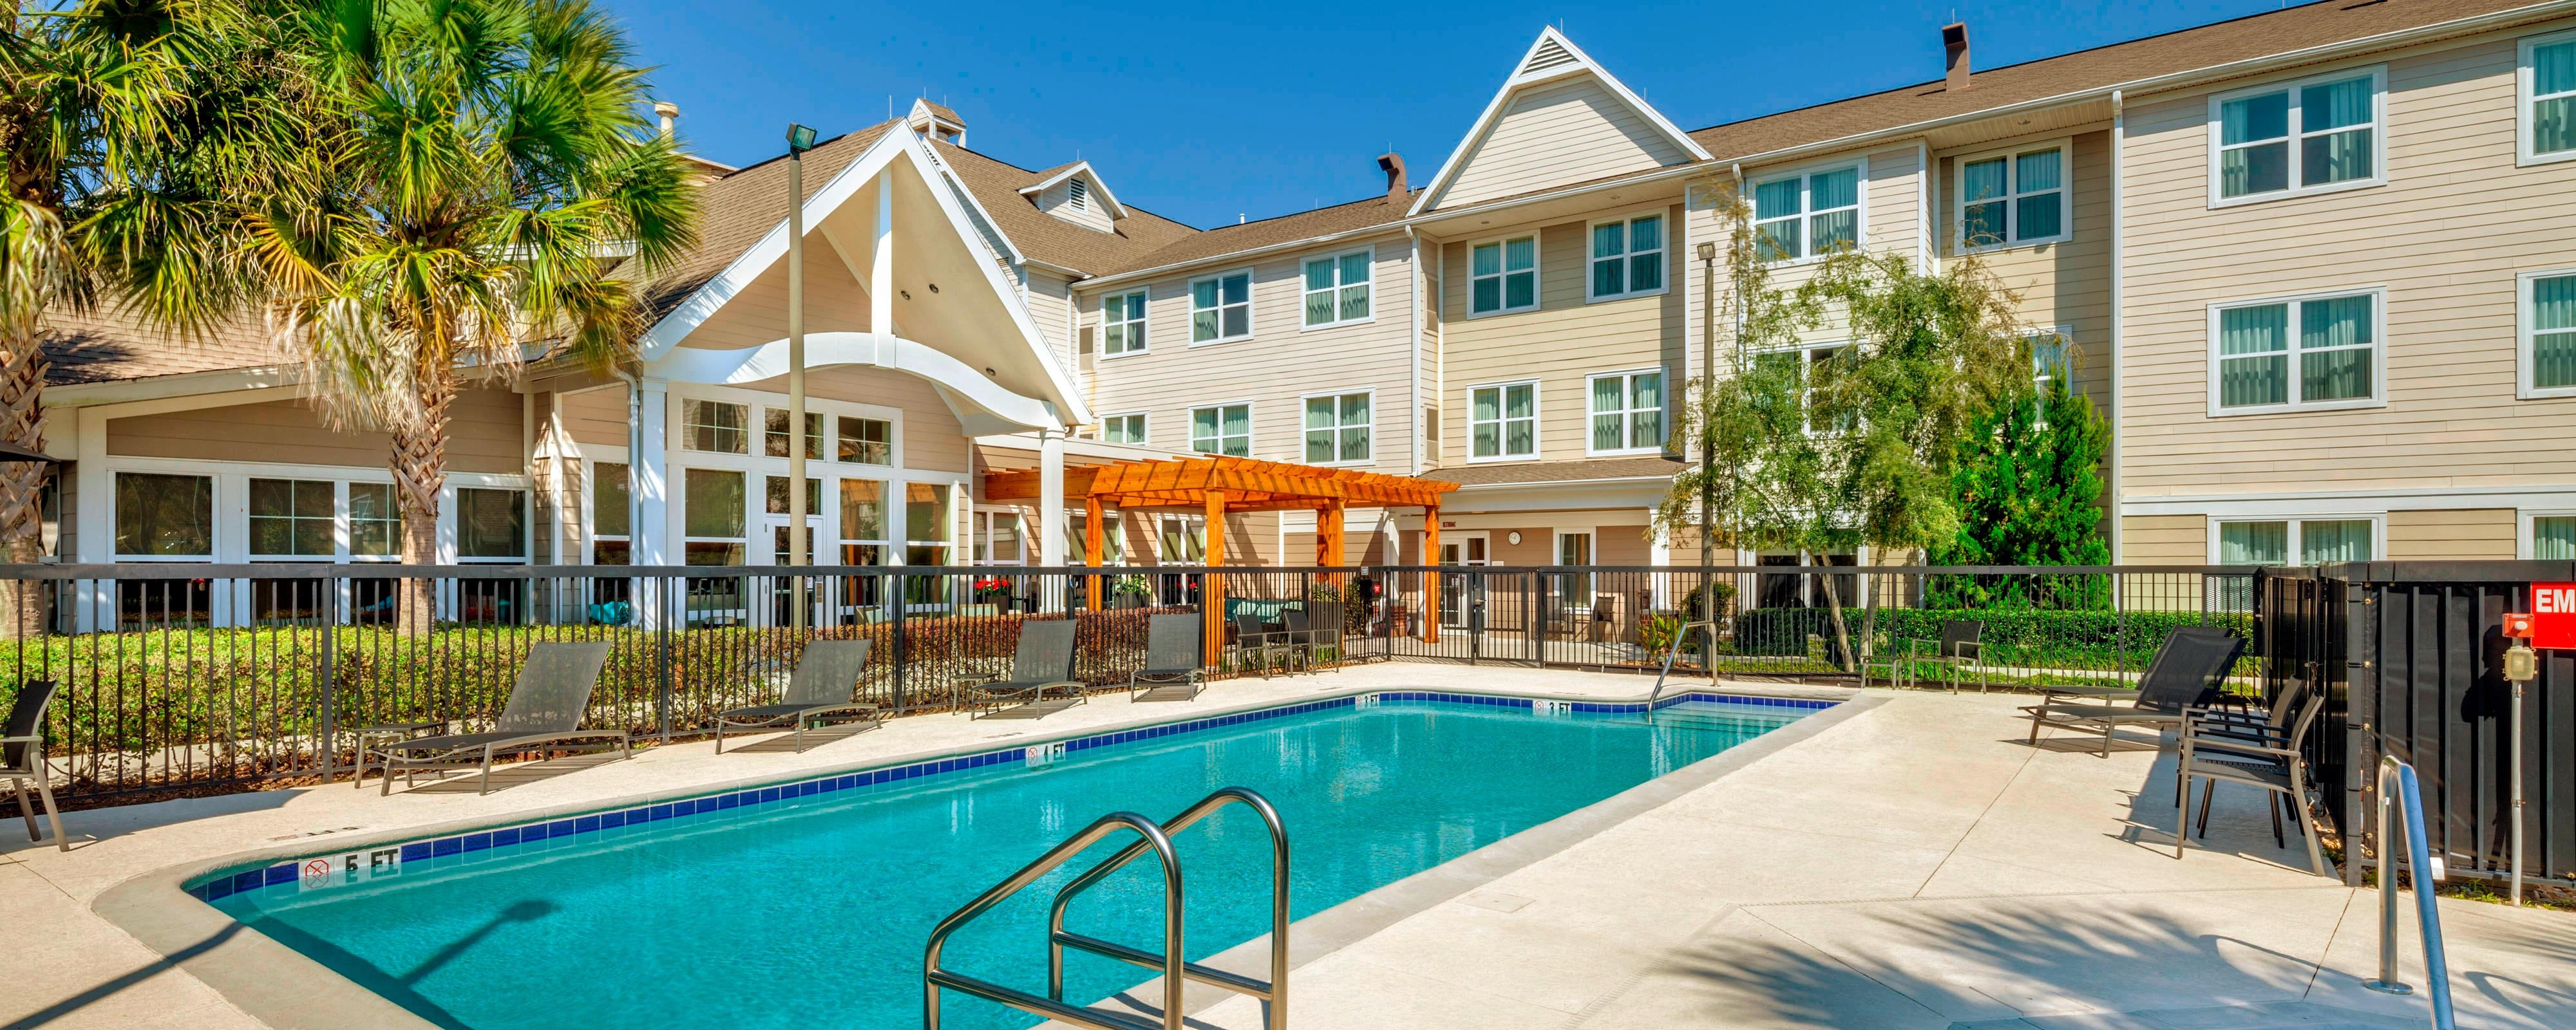 Residence Inn Ocala Outdoor Pool